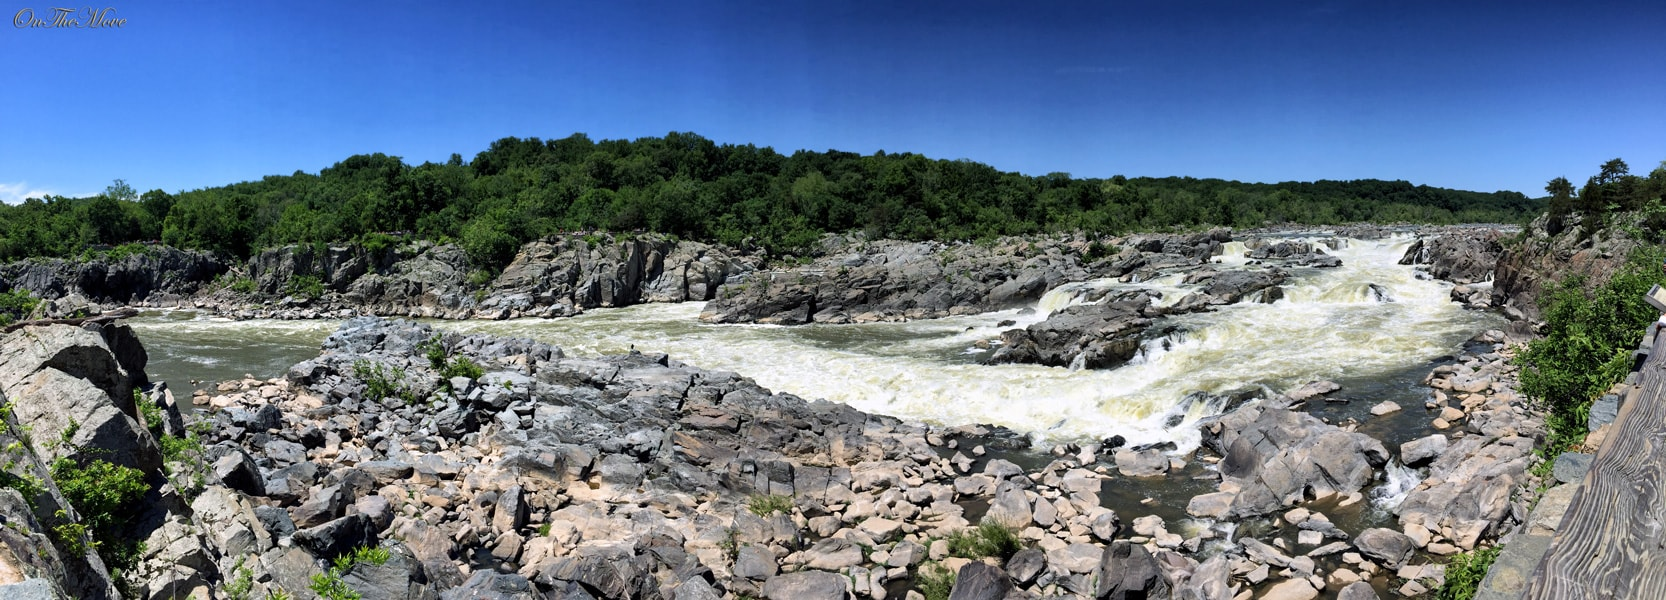 Great Falls (Marylend)